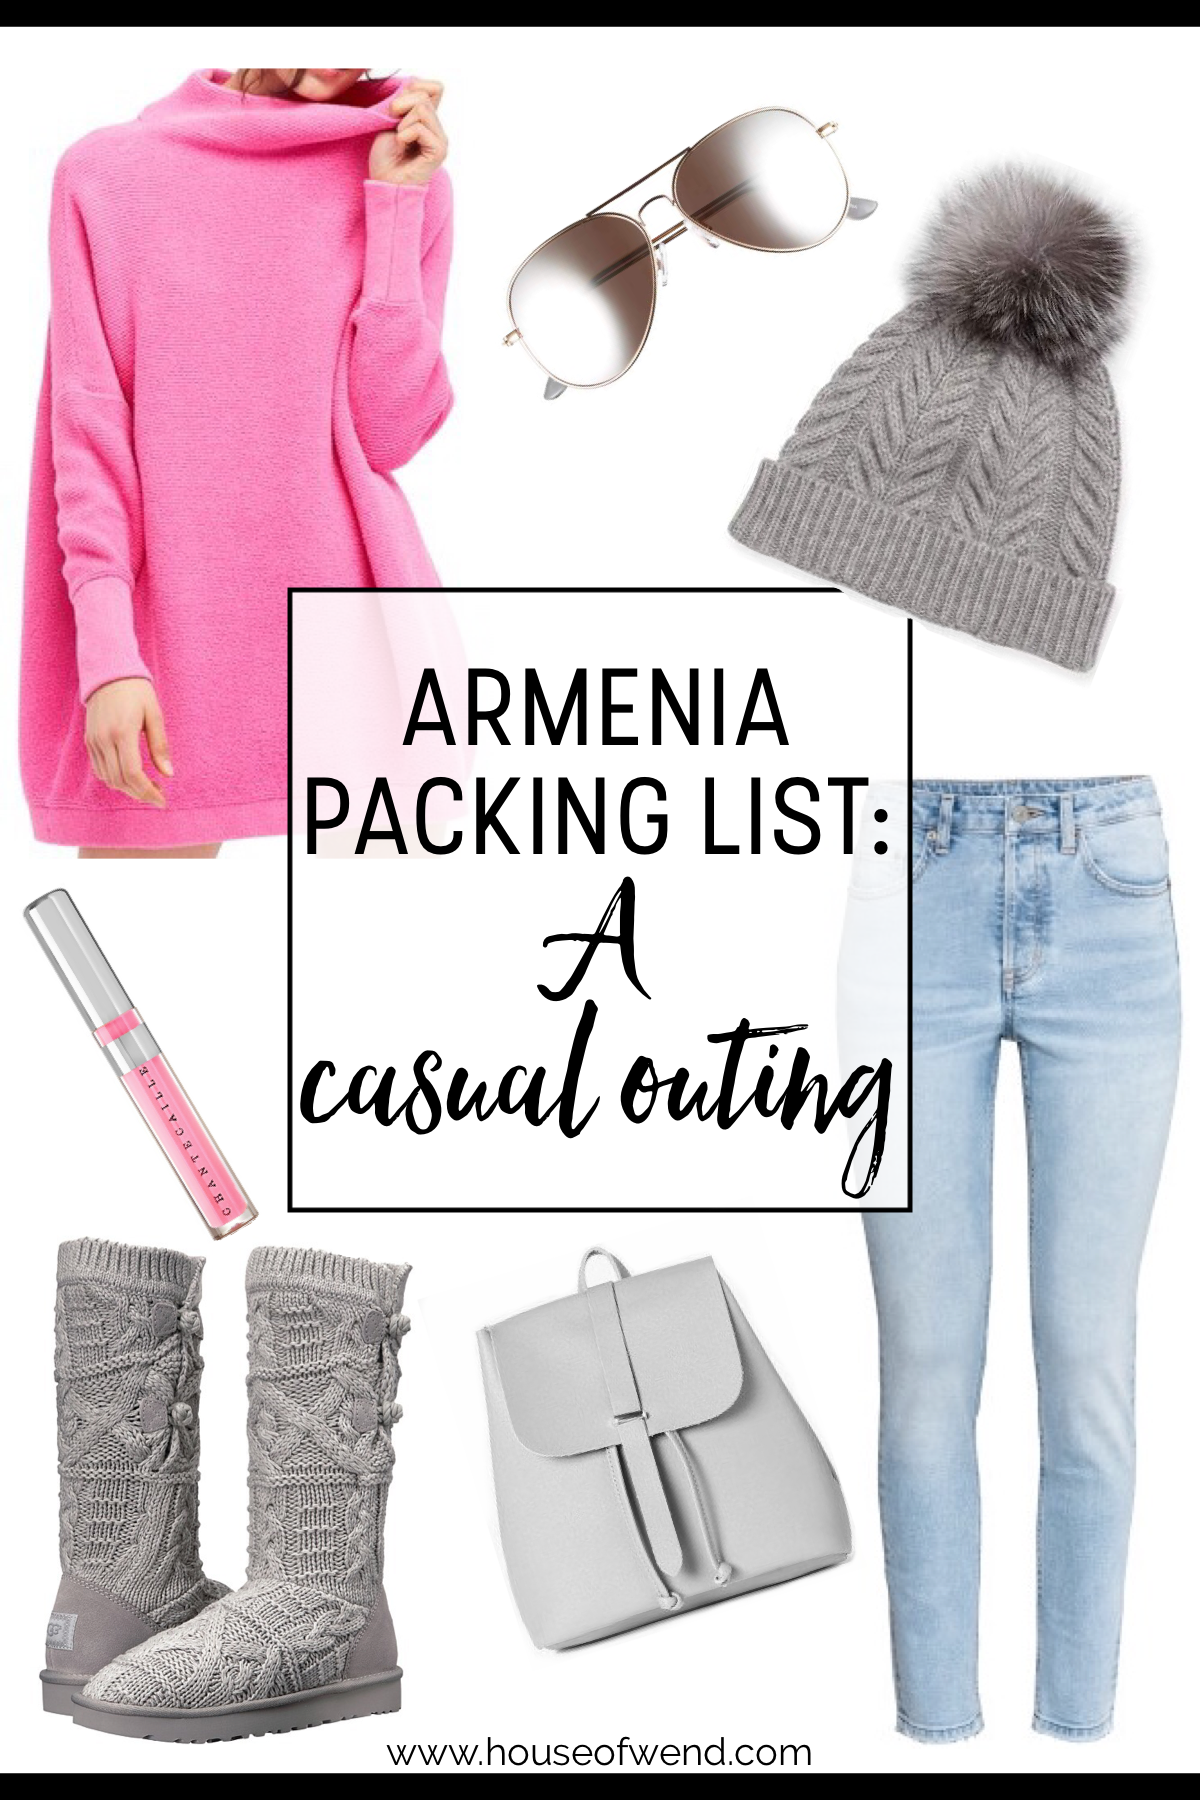 Armenia packing list for a casual outing